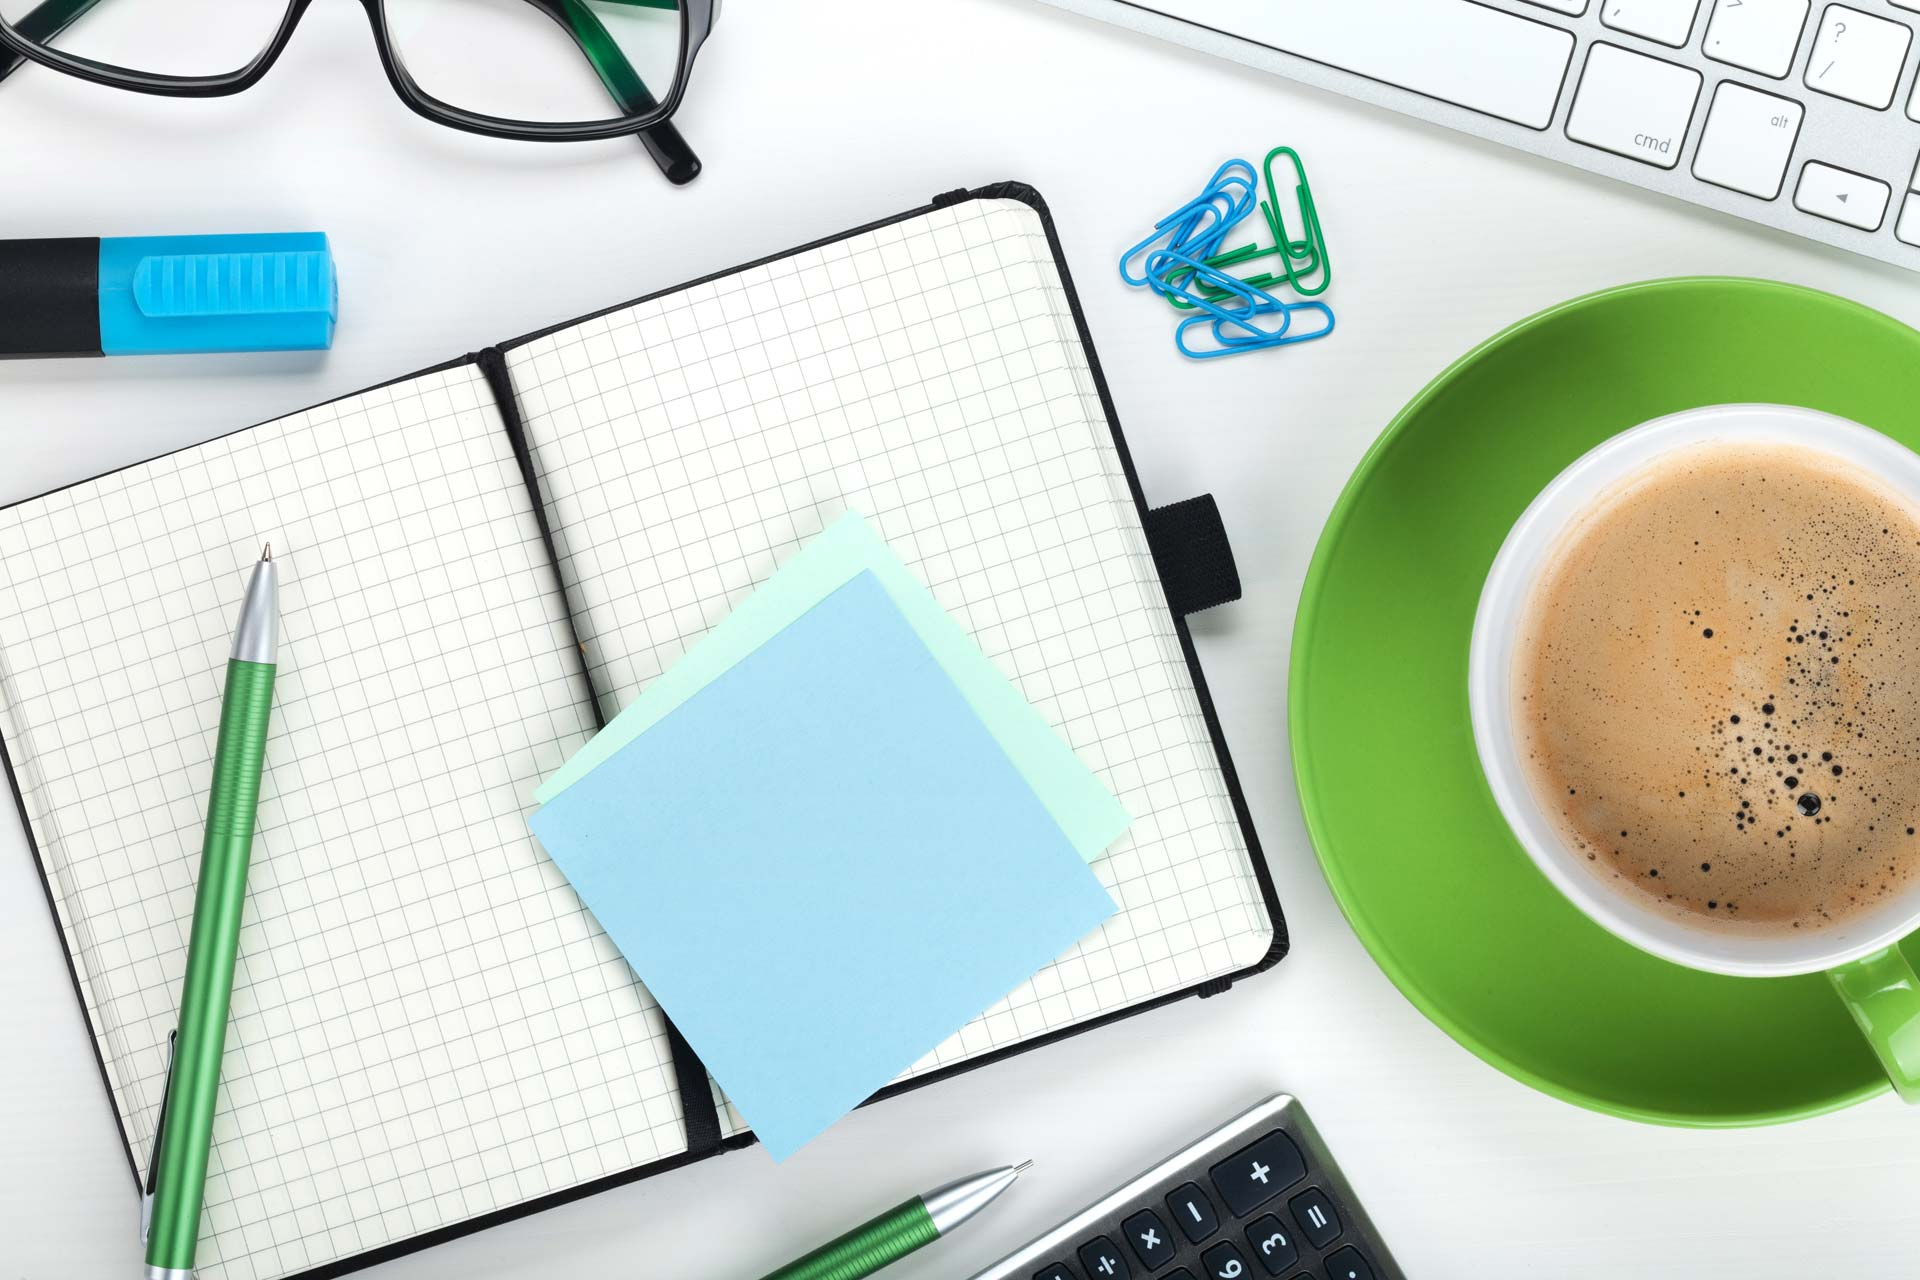 Green Coffee Cup And Office Supplies View From Above Sportingclass White Keep Up To Date With Sign For Our Newsletters Follow Us On Social Media We Take Your Privacy Seriously Will Never Share You